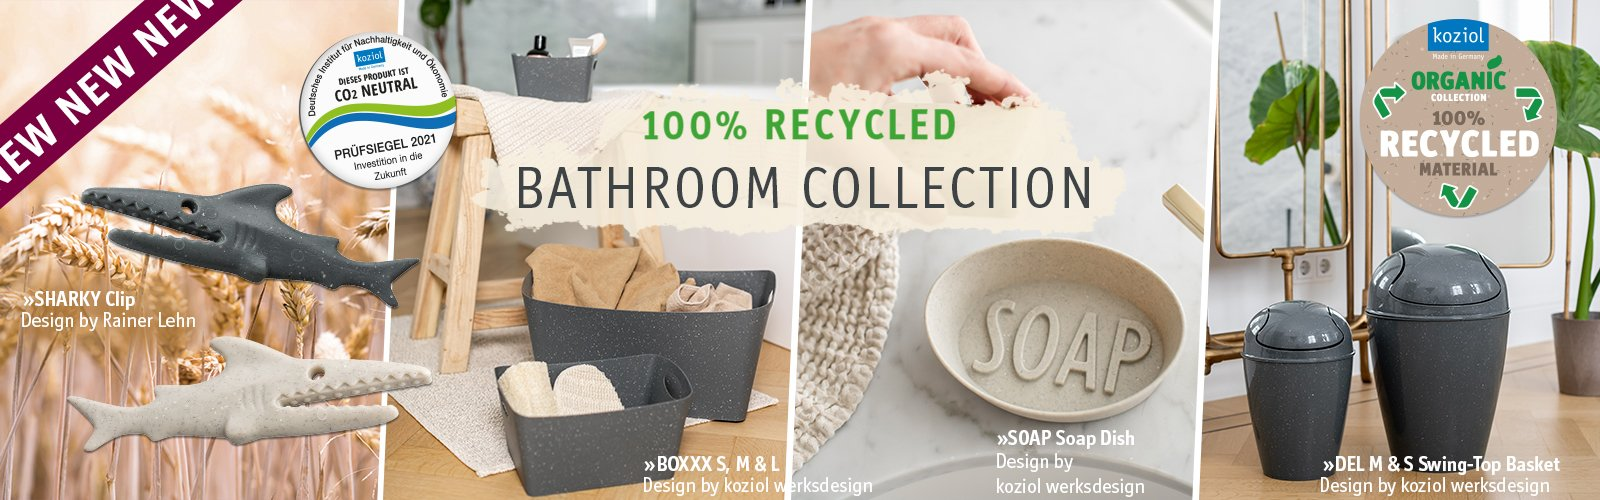 Recycled Bathroom